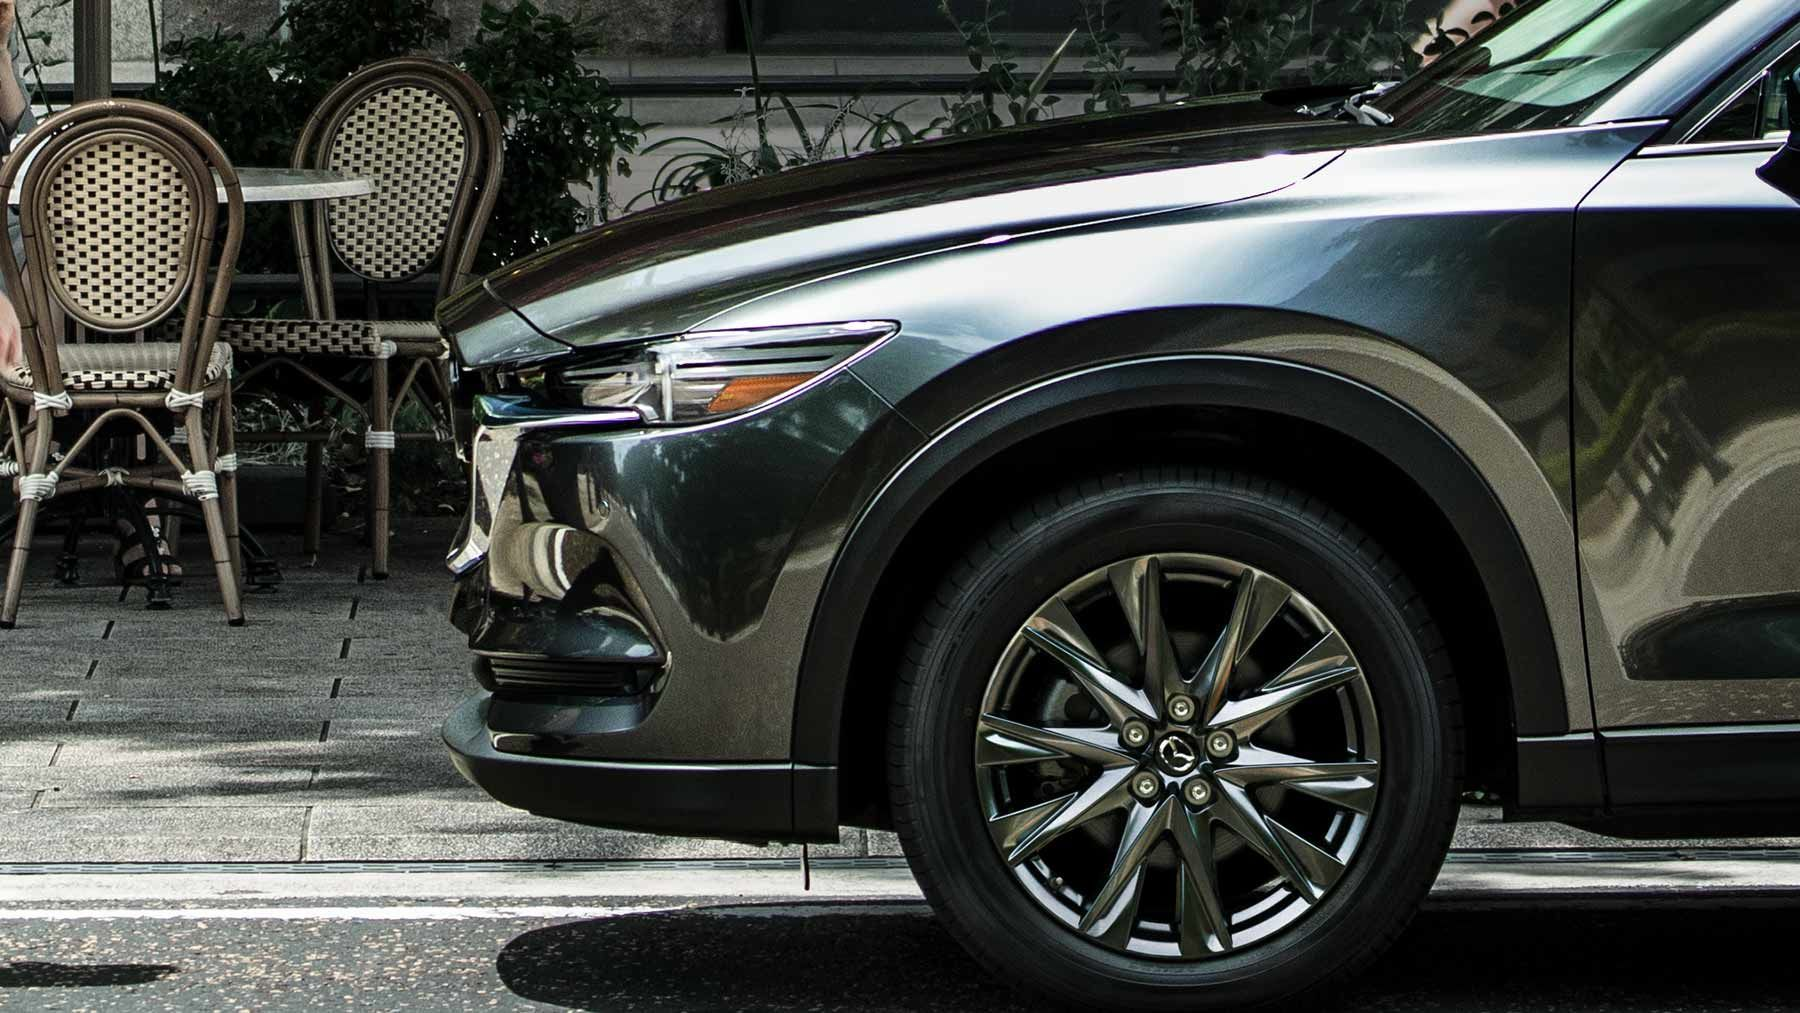 2019 Mazda CX-5: News, Upgrades, Price >> Bay Mazda In Belleville What You Need To Know About The 2019 Mazda